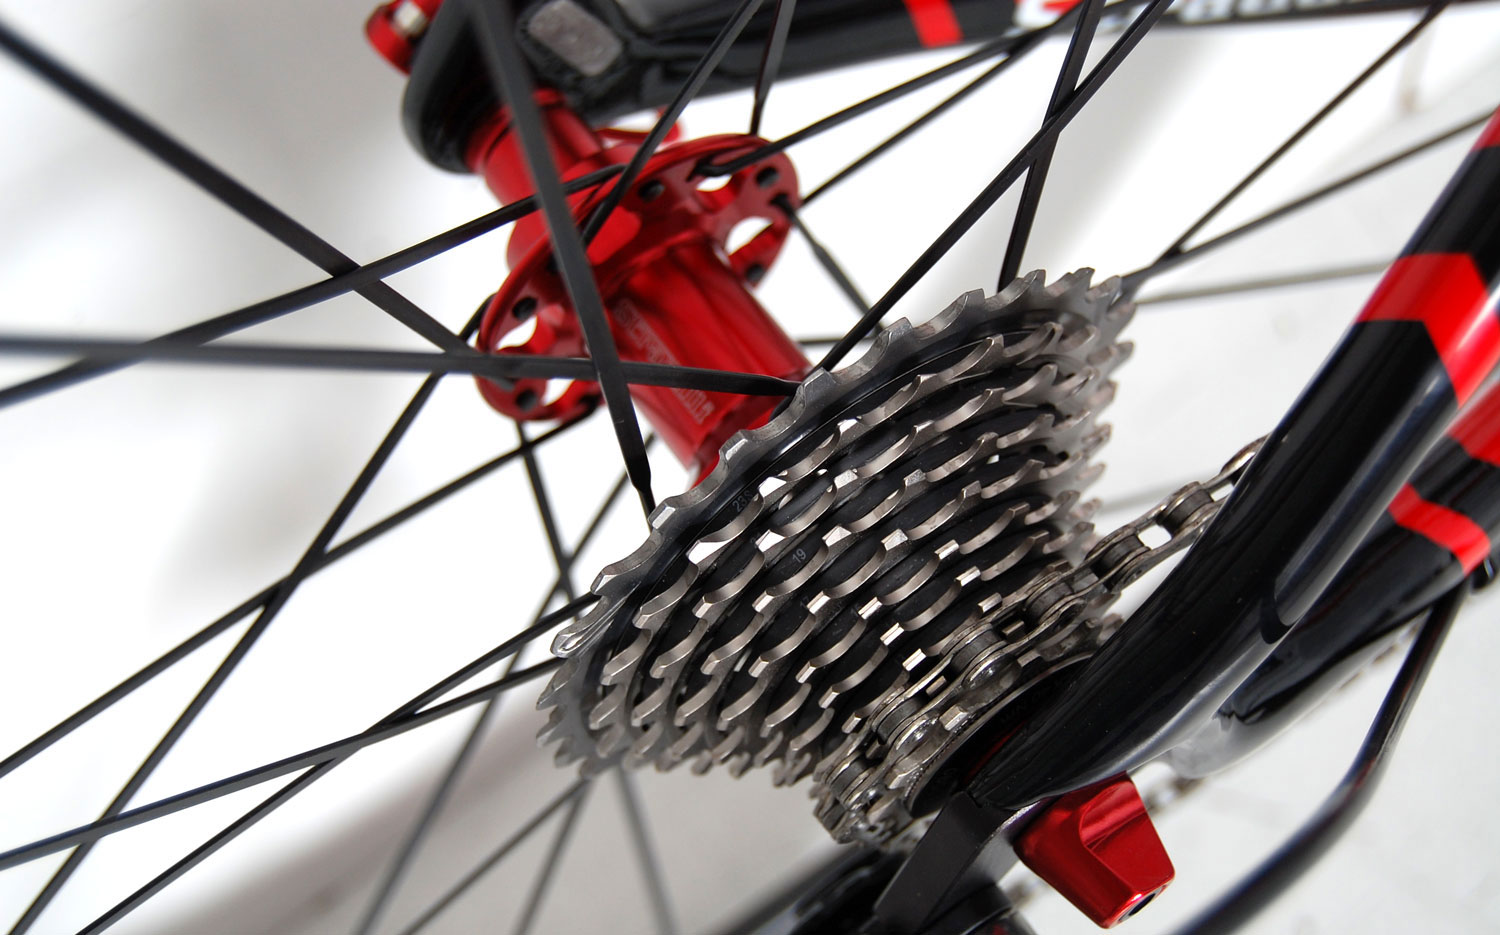 New SRAM Red Full Carbon Road Race Bicycle Wheels BB30 LG